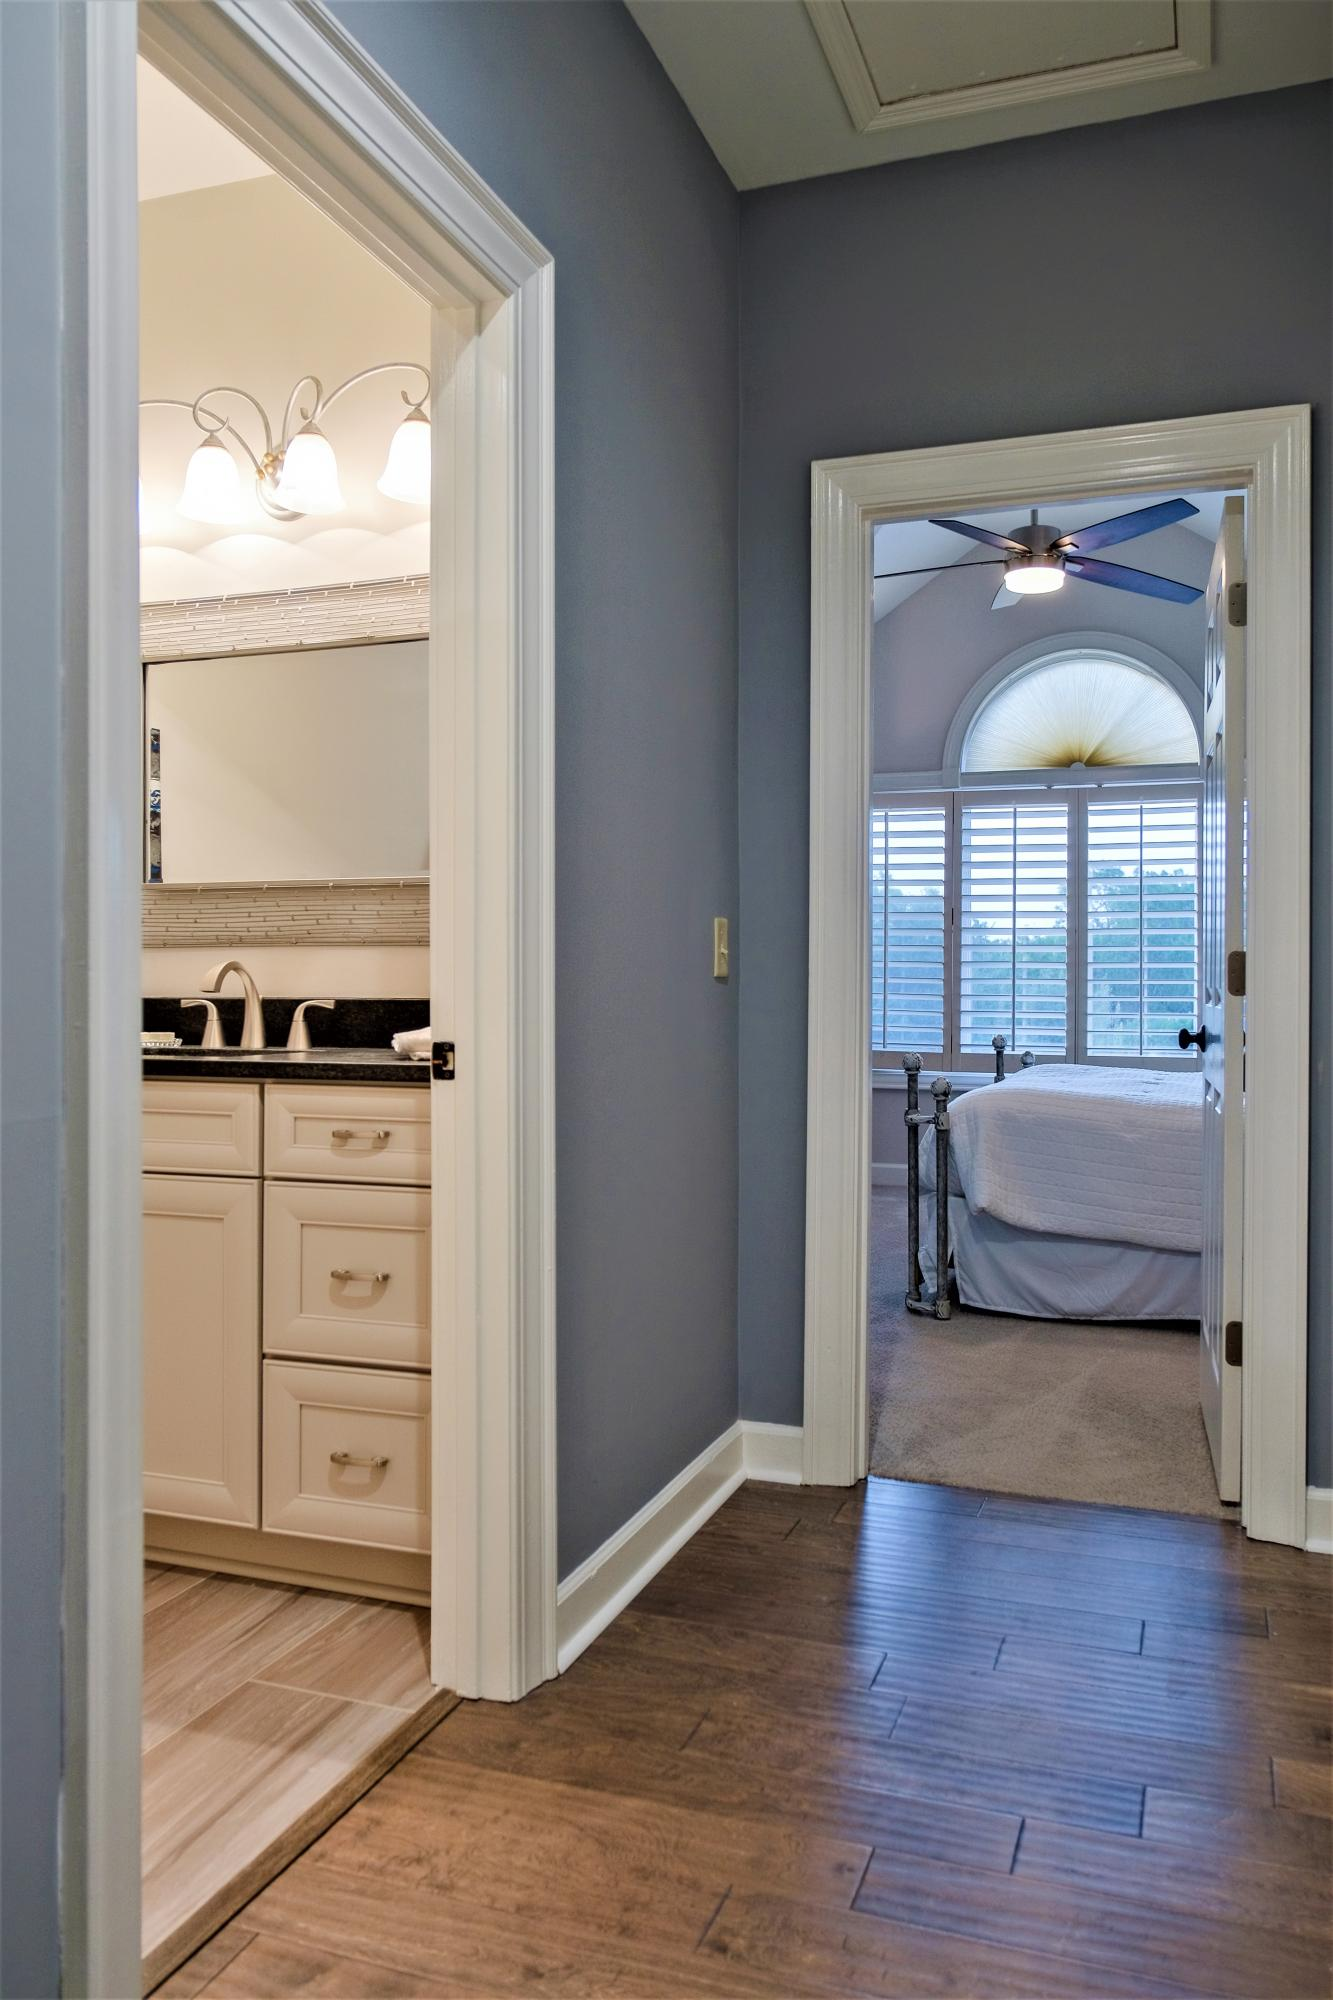 Simmons Pointe Homes For Sale - 1551 Ben Sawyer, Mount Pleasant, SC - 5